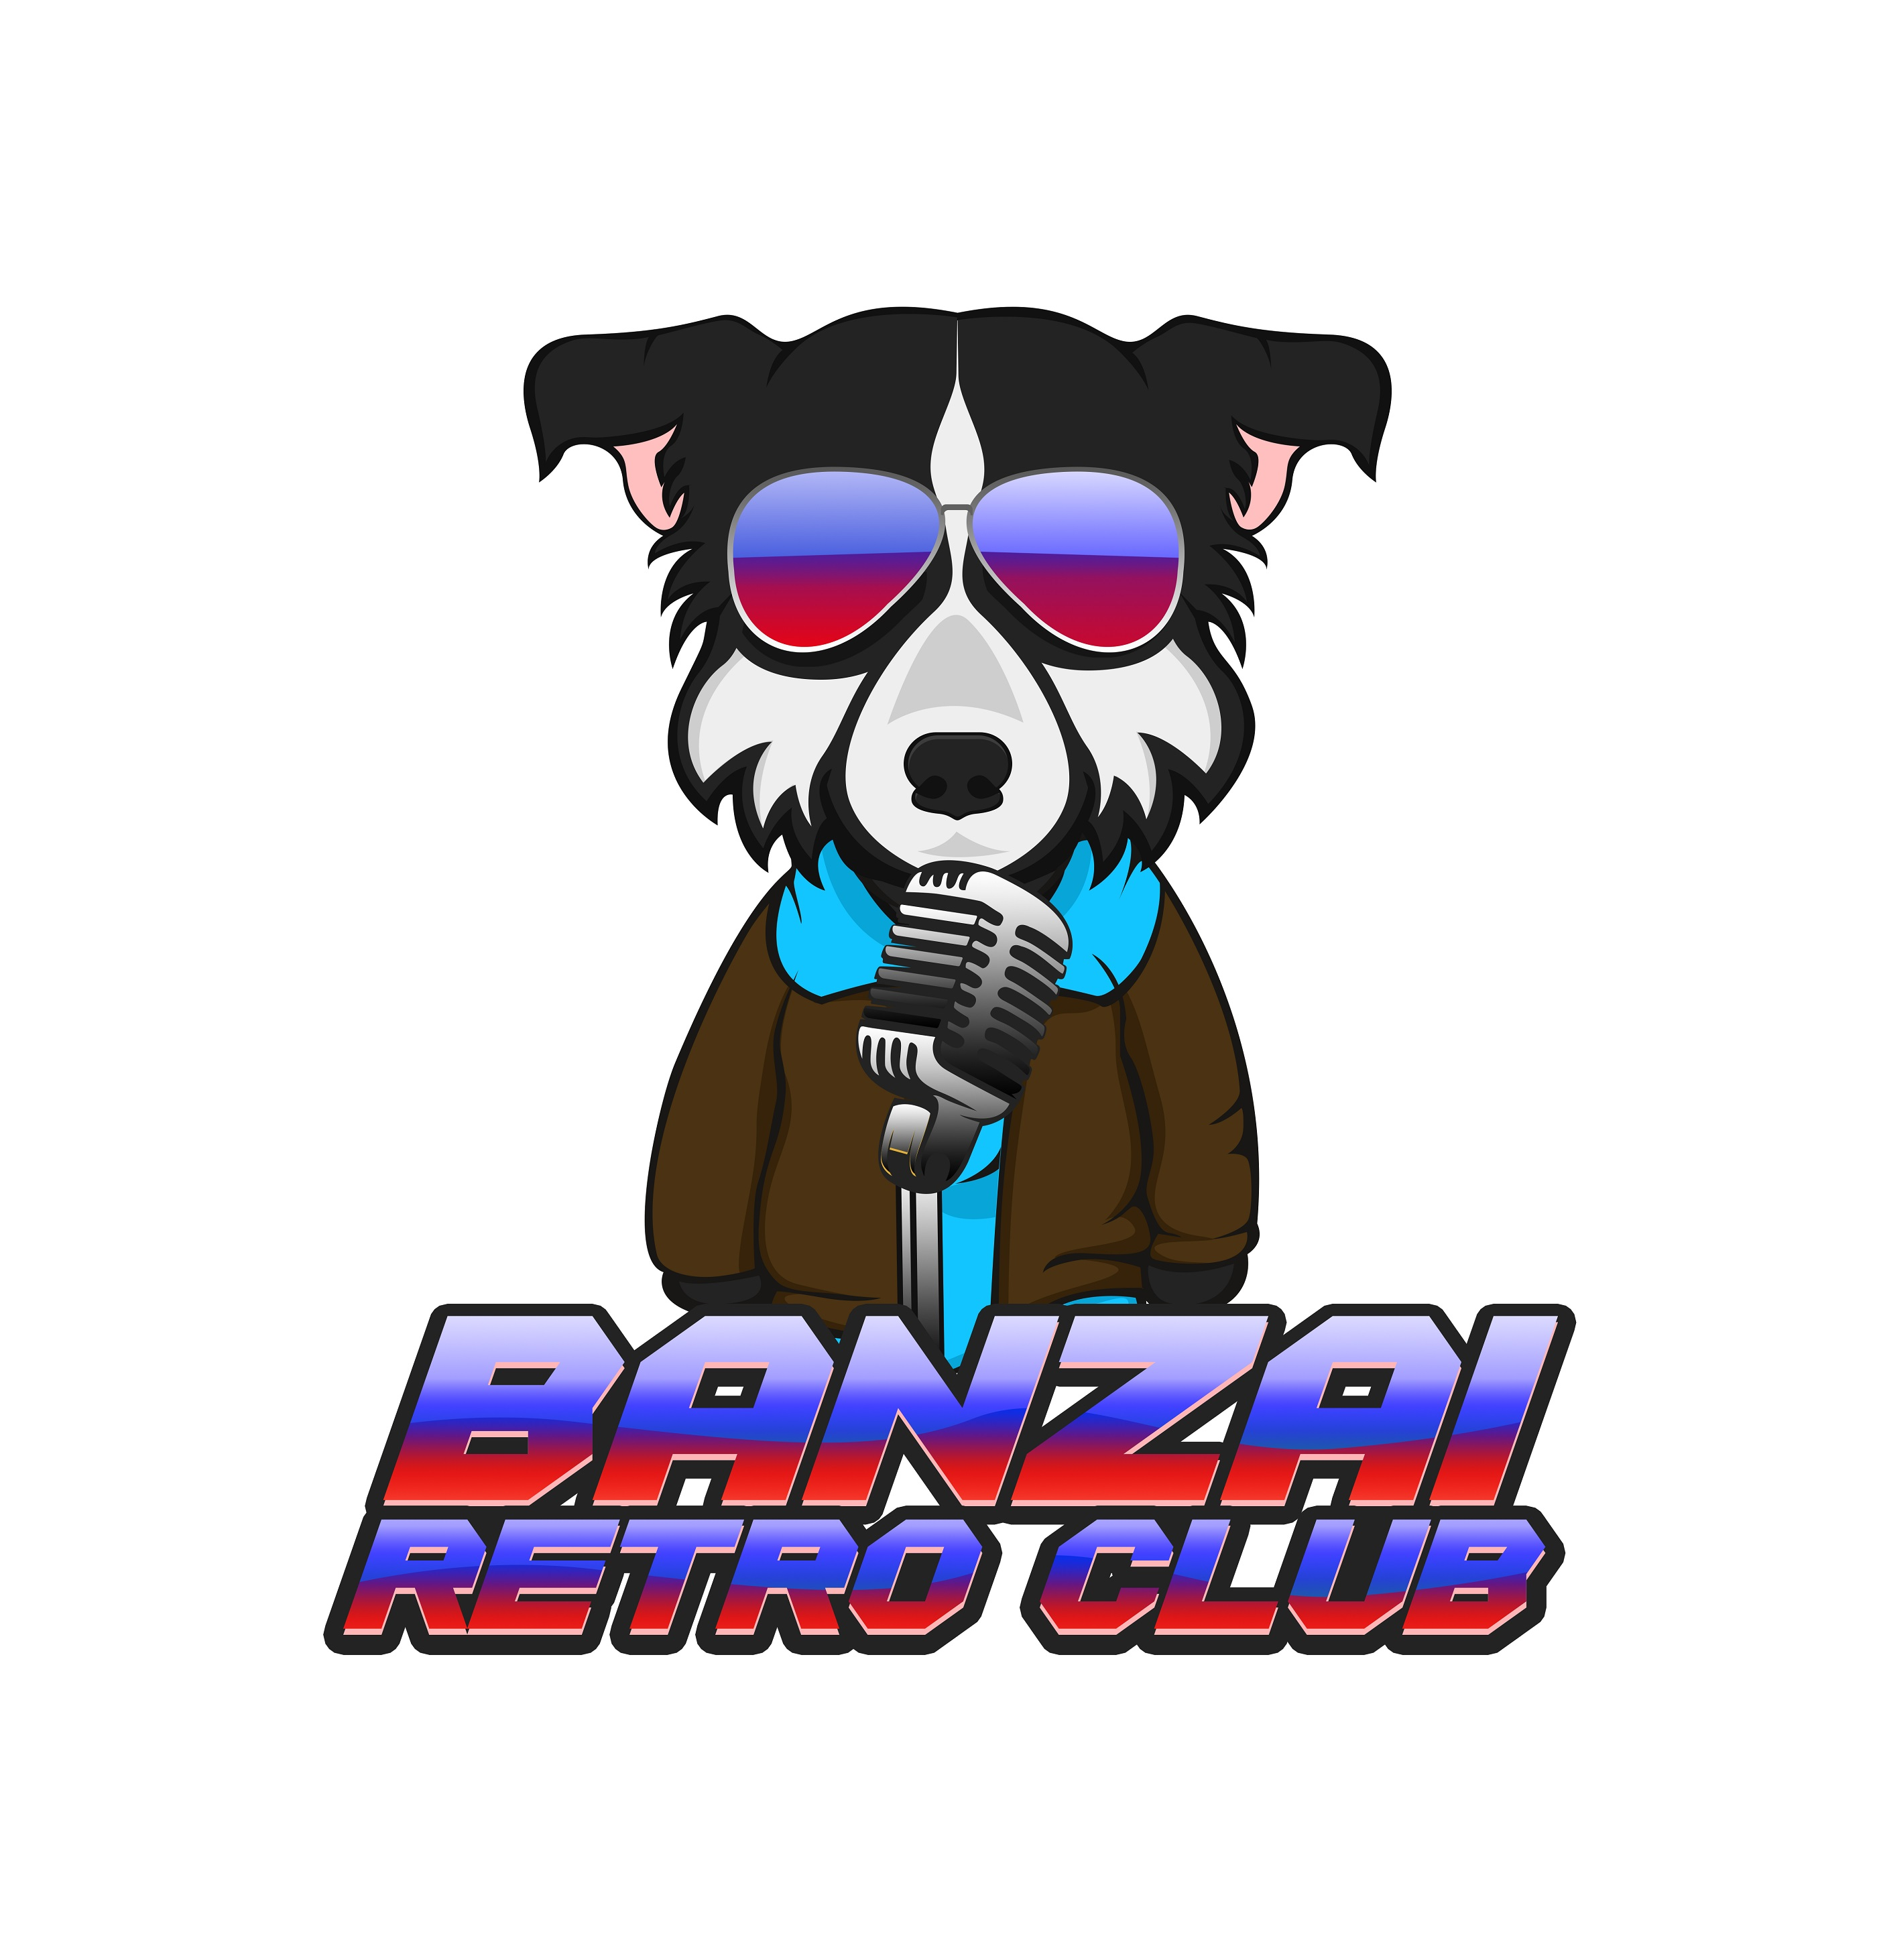 Banzai Retro Club - Best of 70's, 80's, and 90's